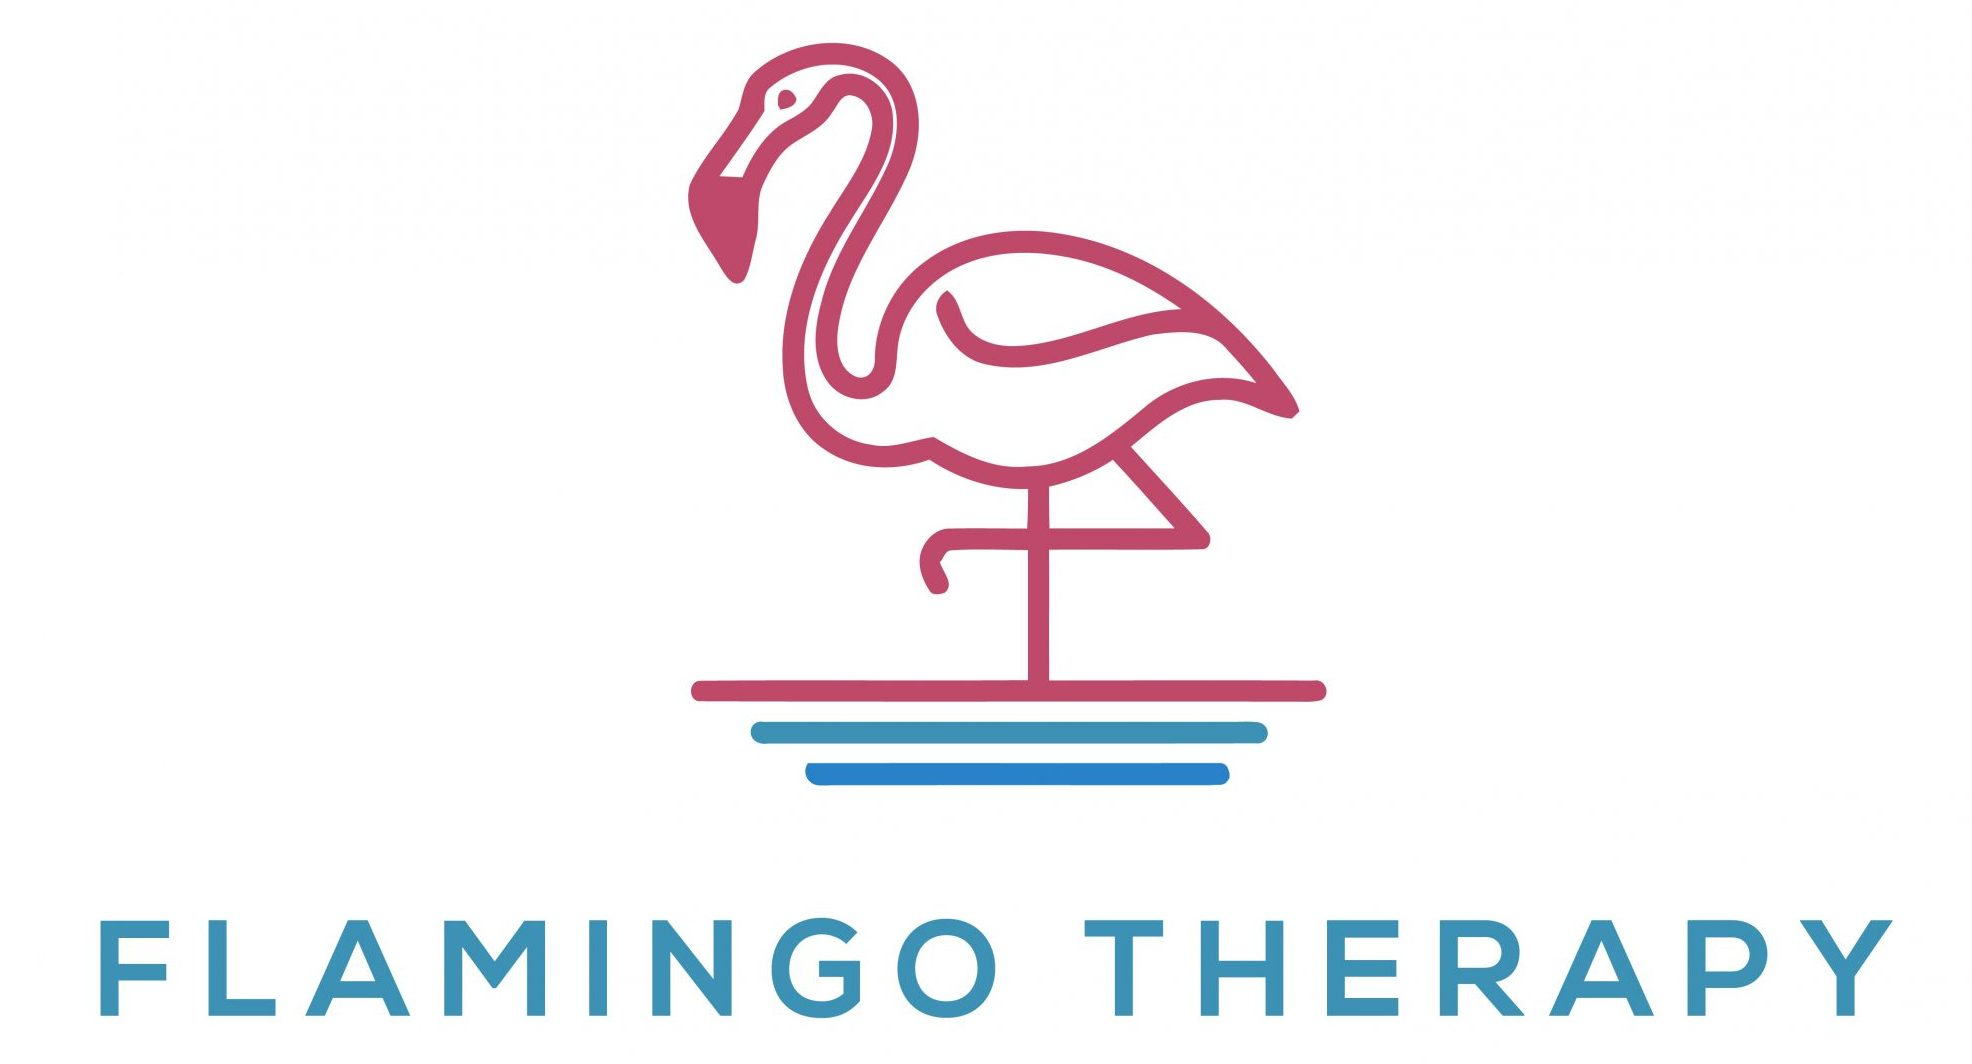 Flamingo Therapy